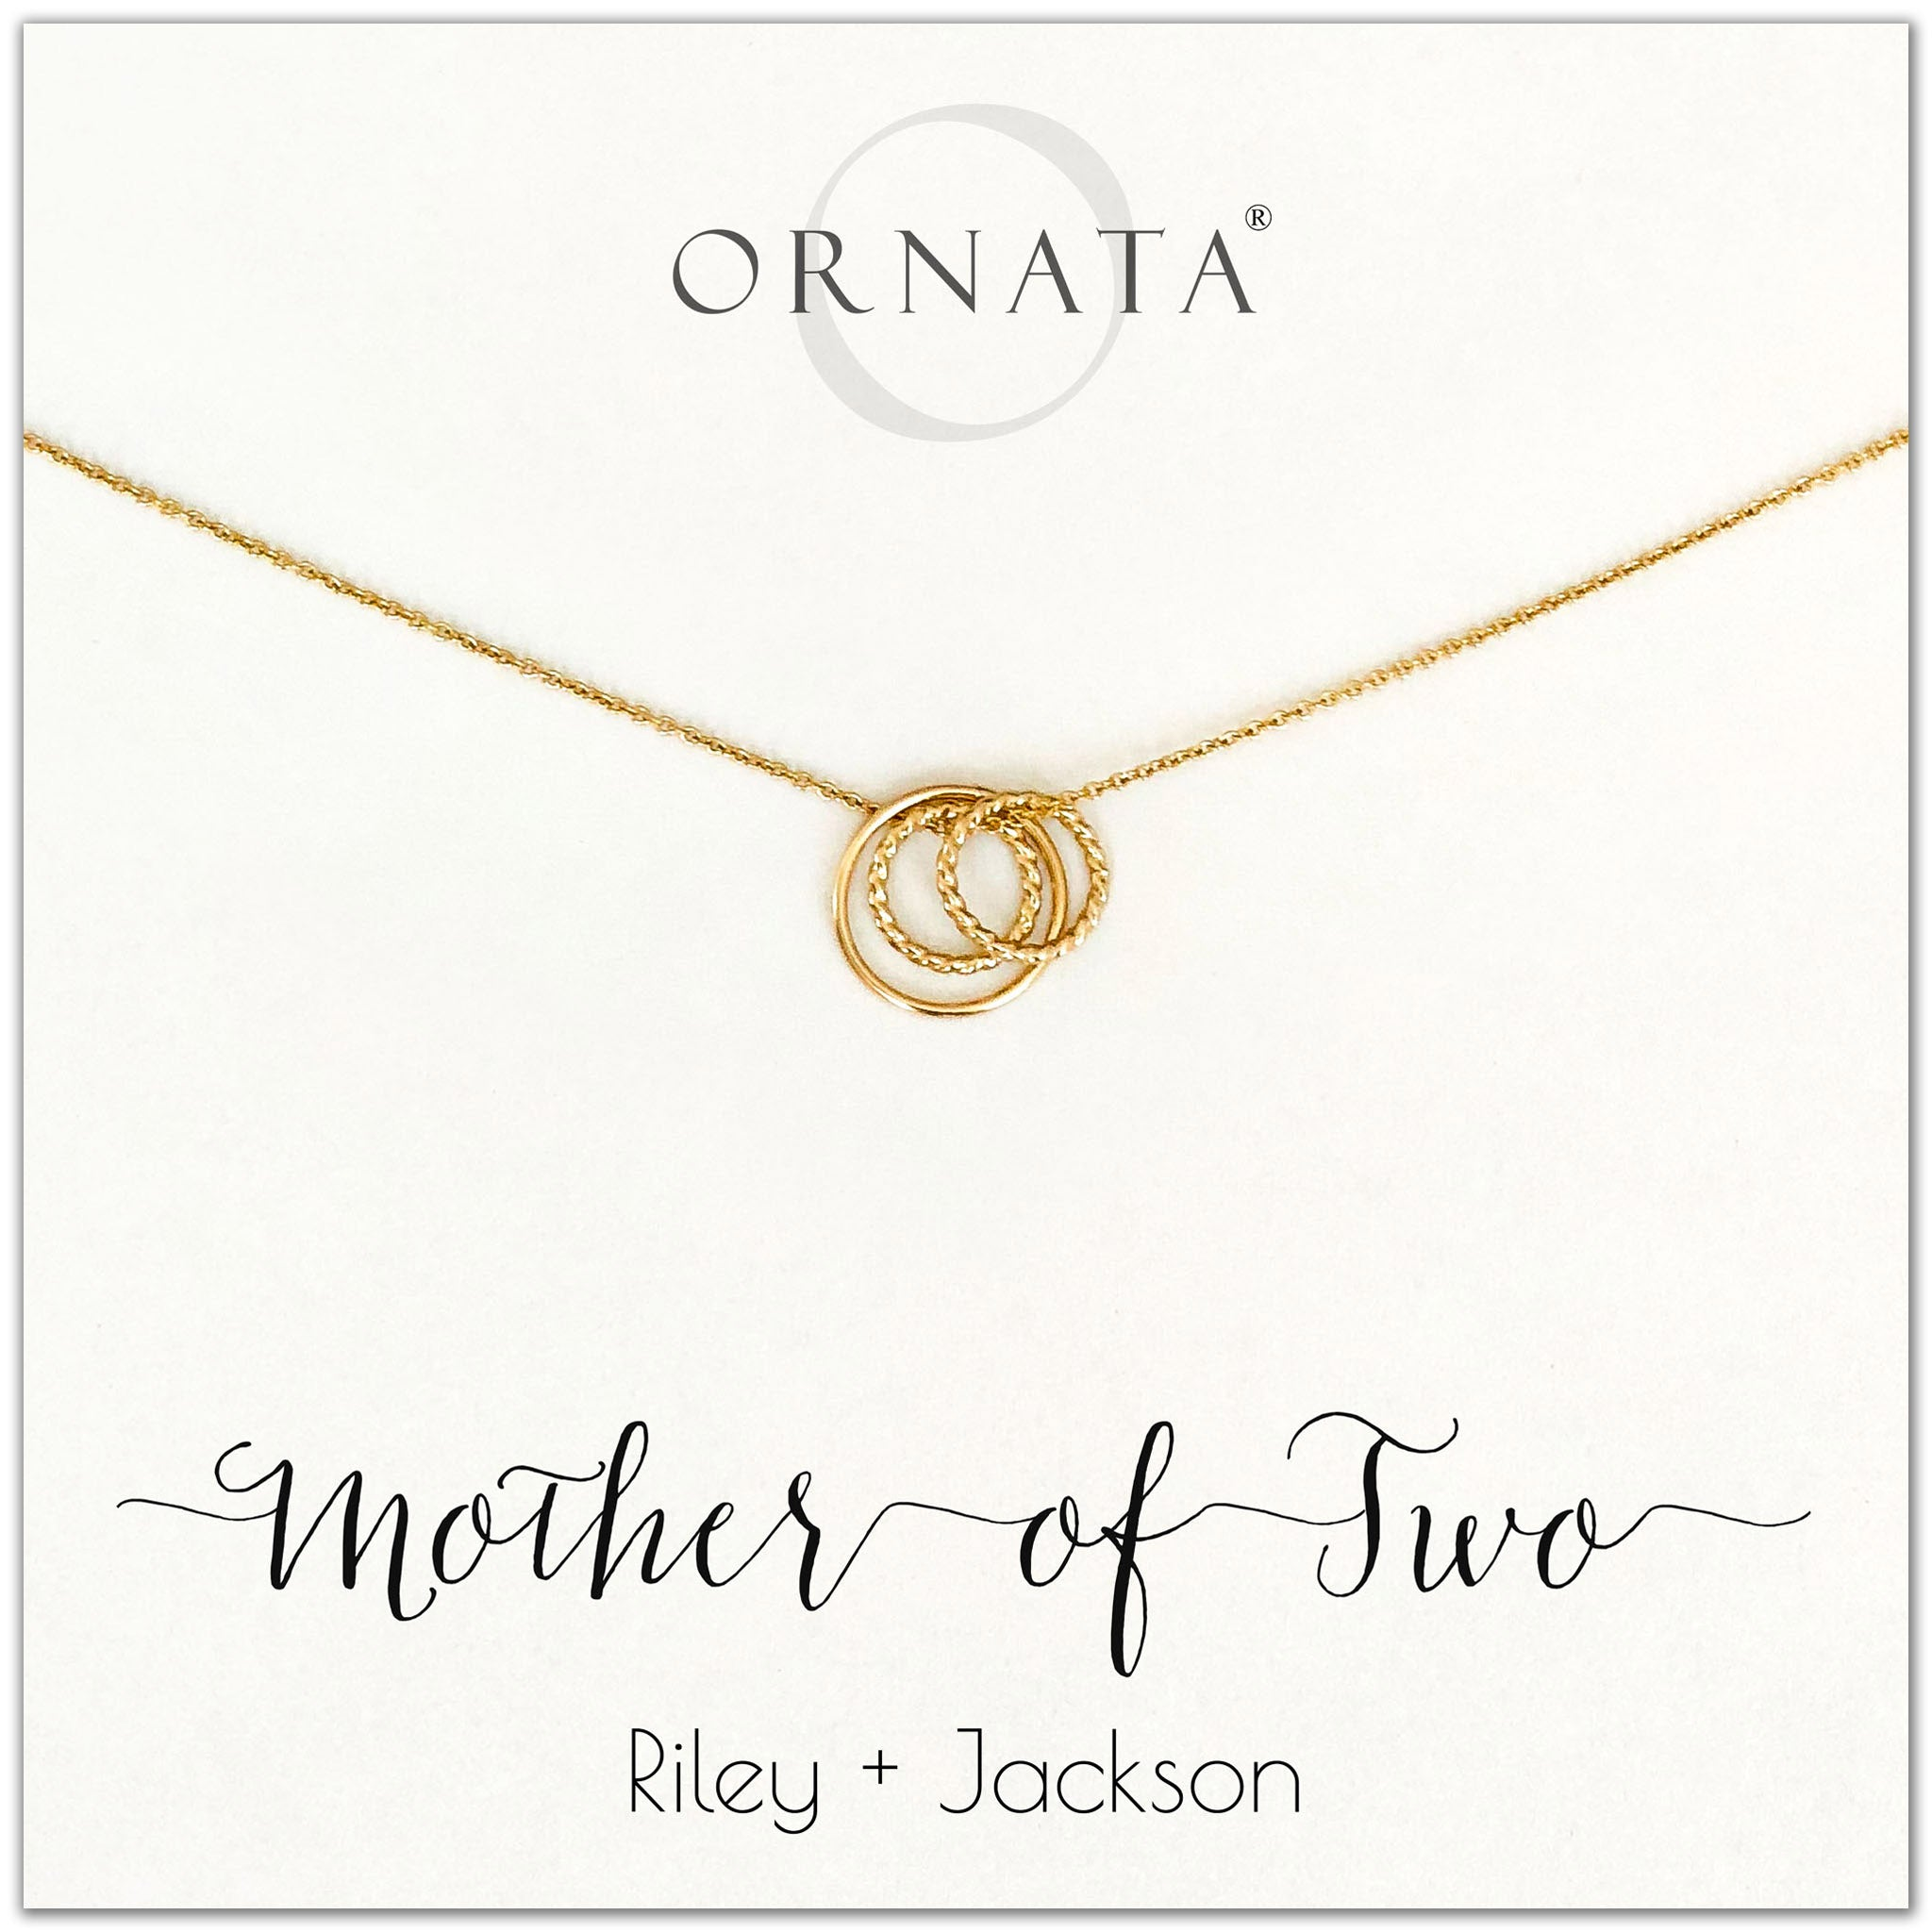 Mom or Mother of Two - personalized gold necklaces. Our 14 karat gold filled custom jewelry is a perfect gift for mothers of two children, daughters, granddaughters, grandmothers, sisters, best friends, wives, girlfriends, and family members. Also a good gift for Mother's Day.